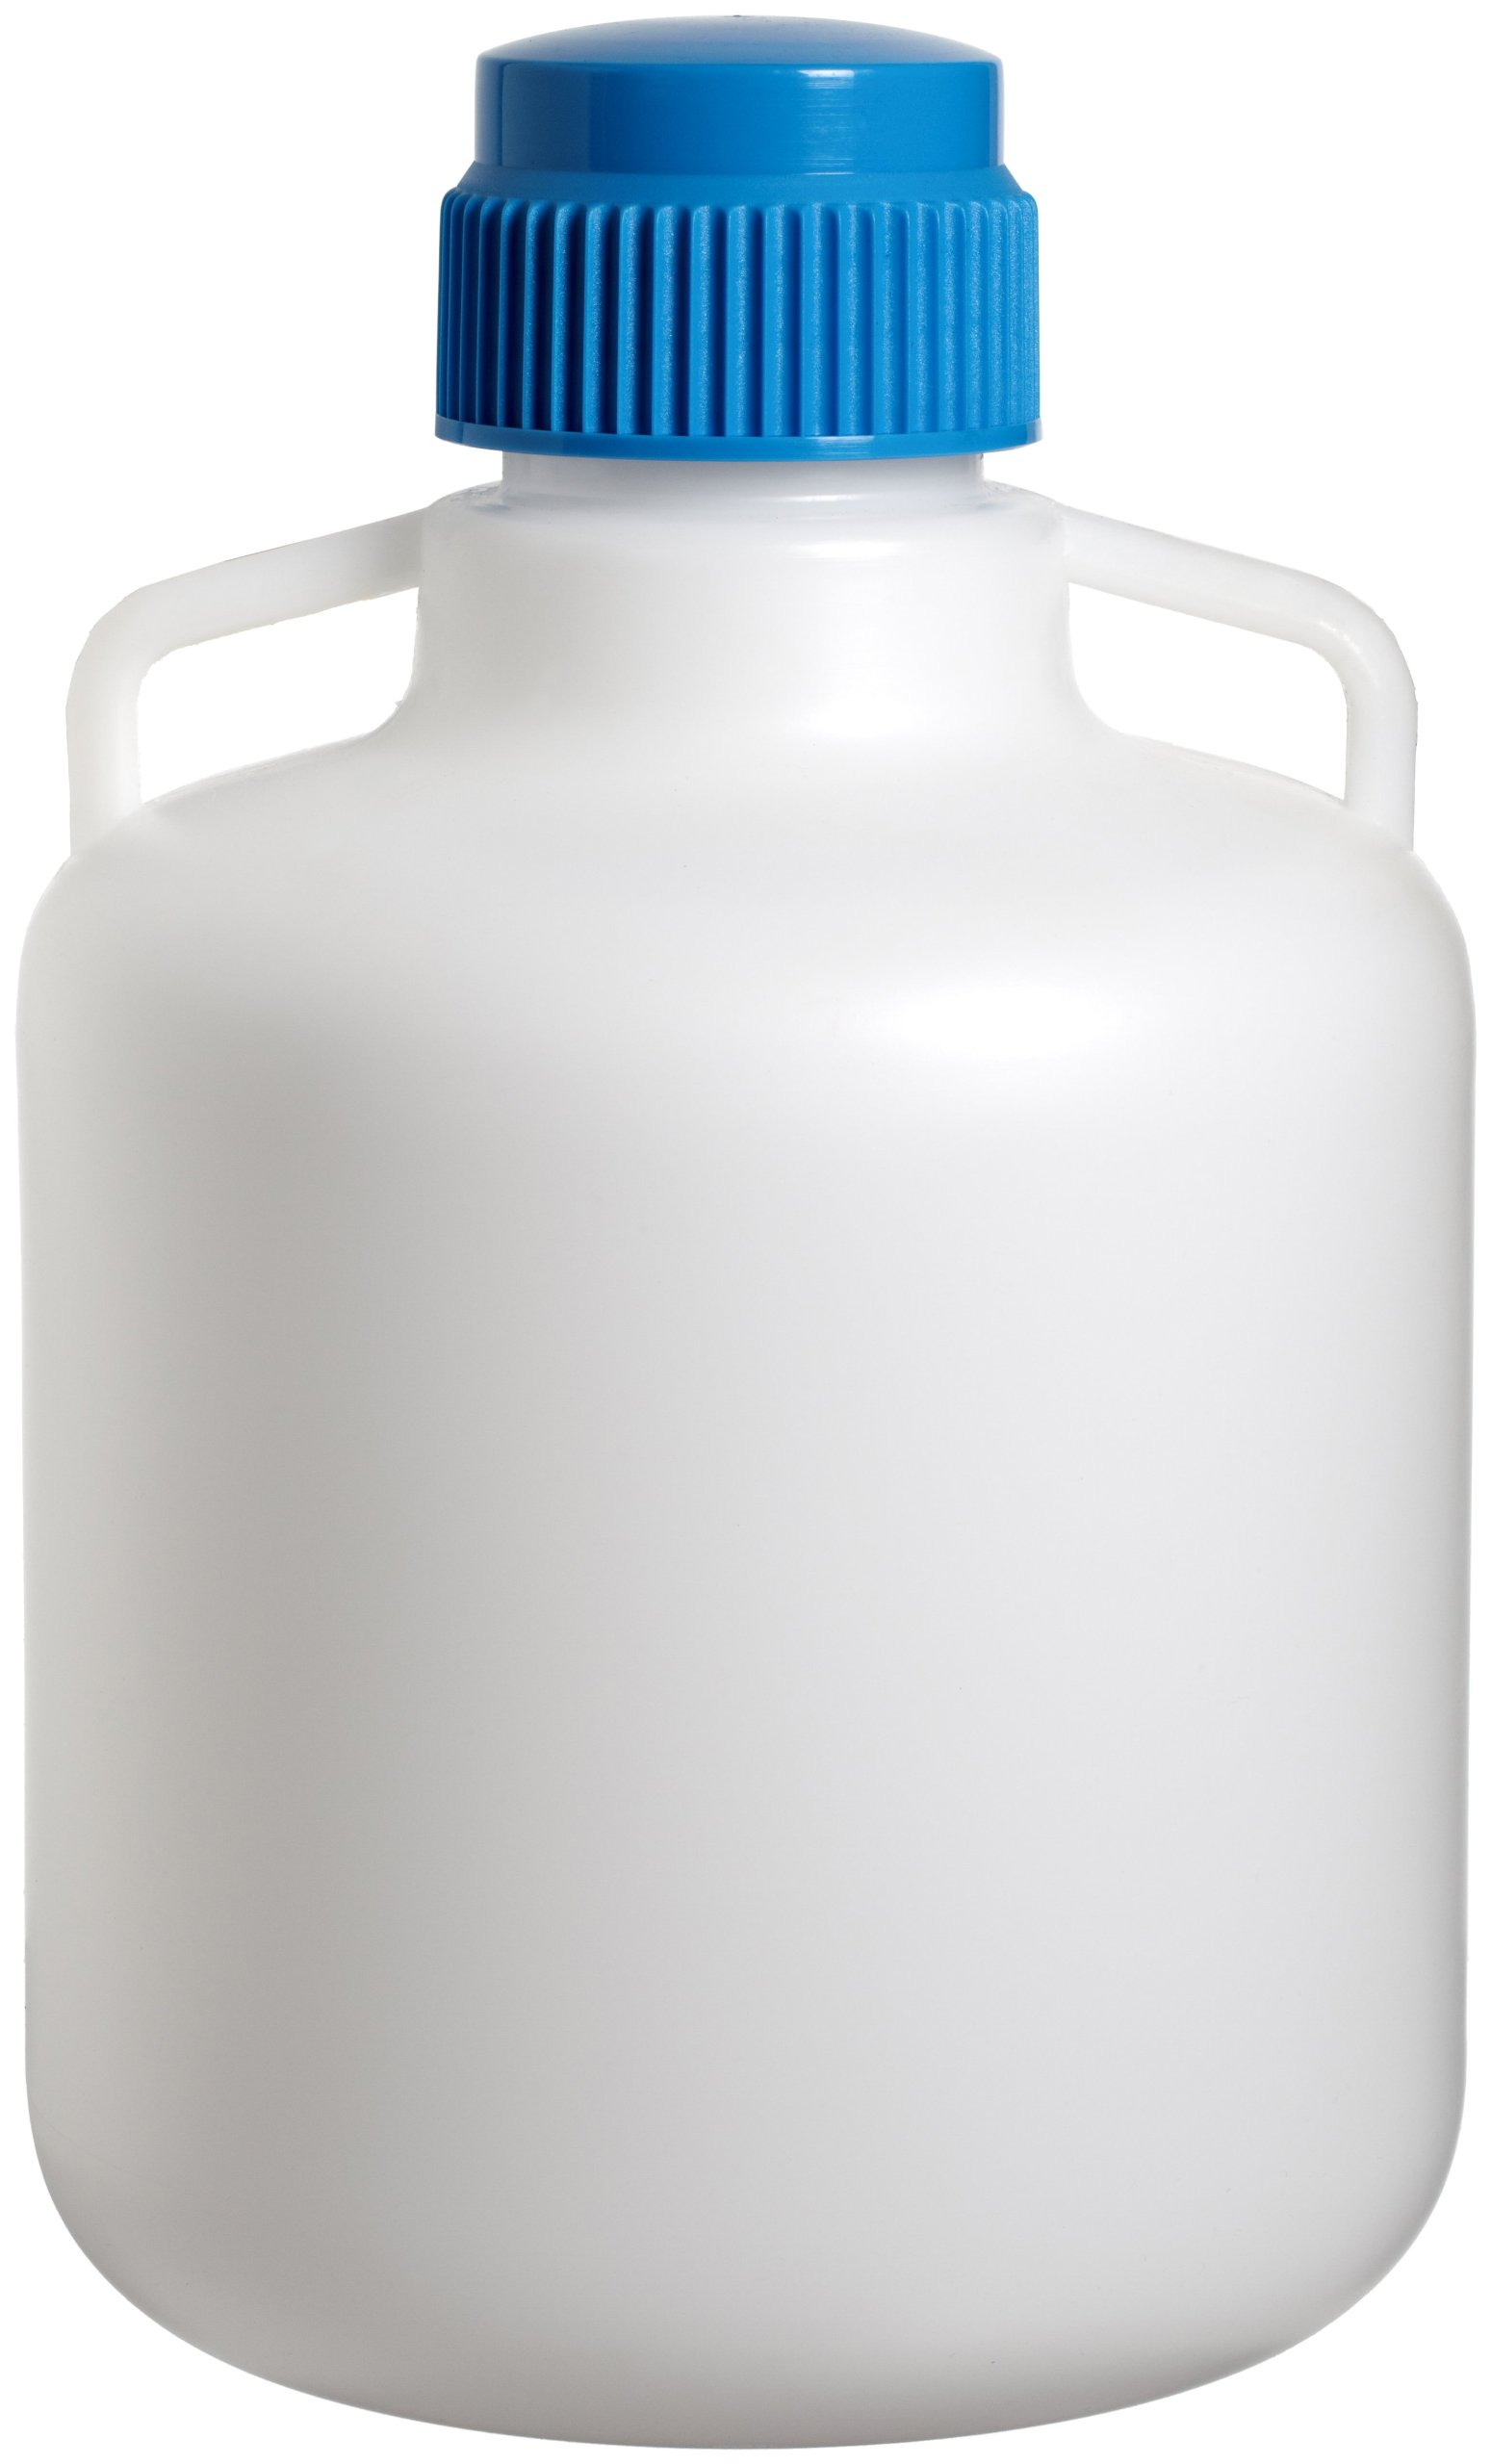 Bel-Art Autoclavable Polypropylene Carboy without Spigot; 10 Liters (2.6 Gallons) (F10794-0025)